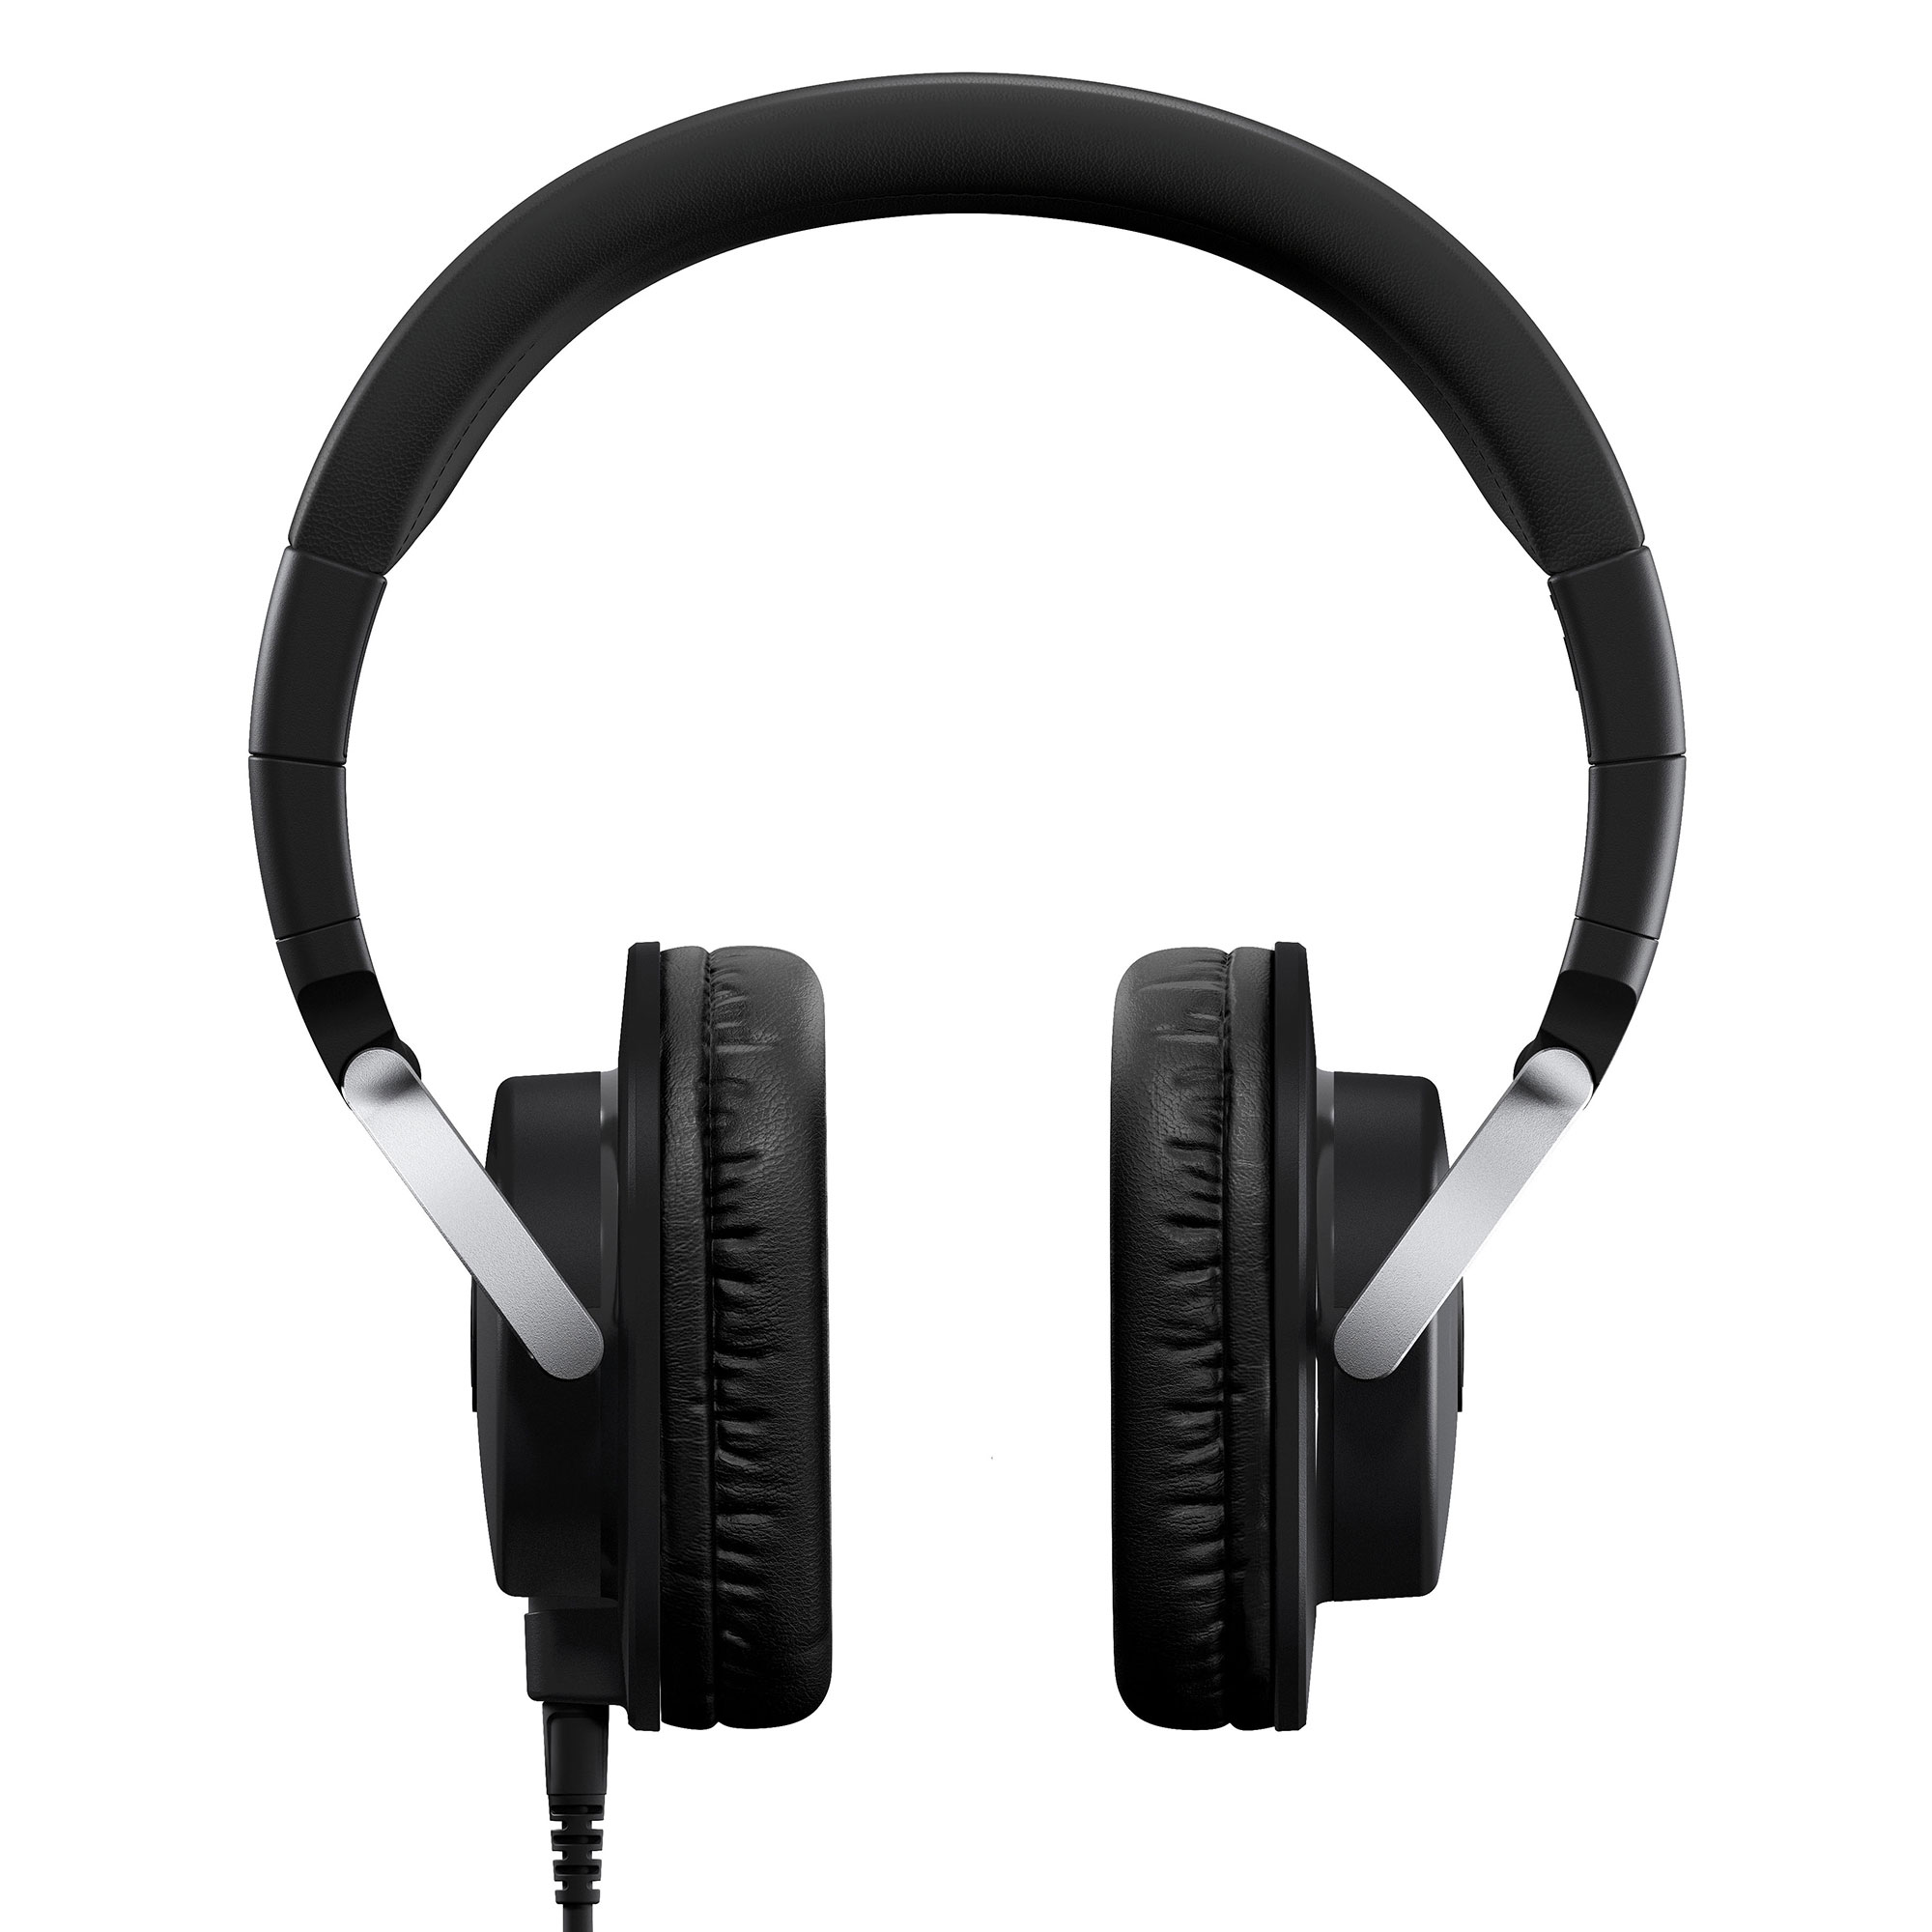 yamaha hph mt8 studio monitor headphones closed back design with reference monitor quality. Black Bedroom Furniture Sets. Home Design Ideas